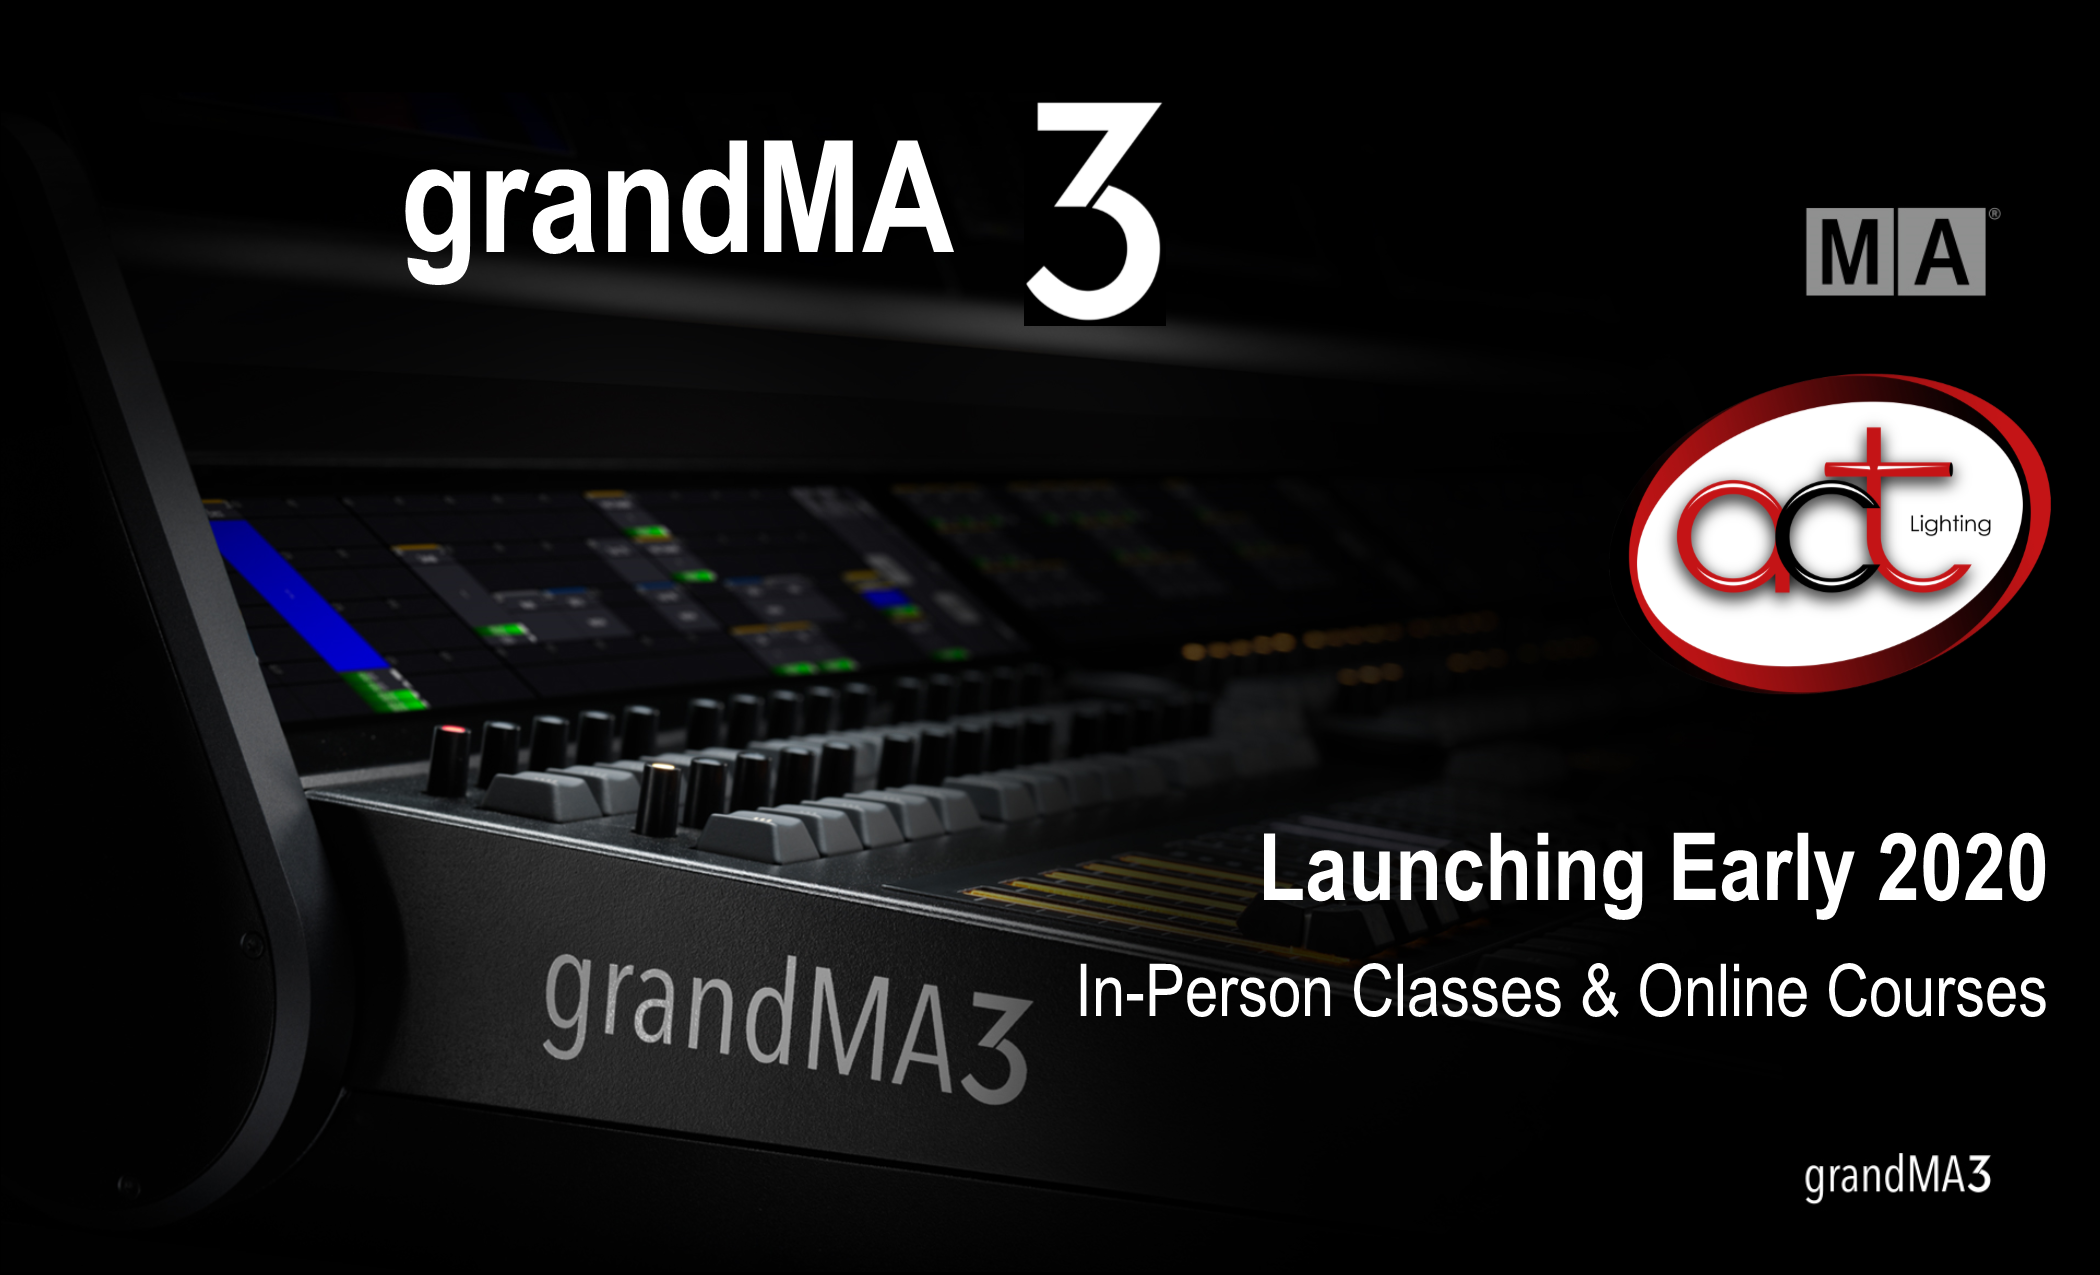 grandMA3 In-Person Classes & Online Courses - Launching Early 2020